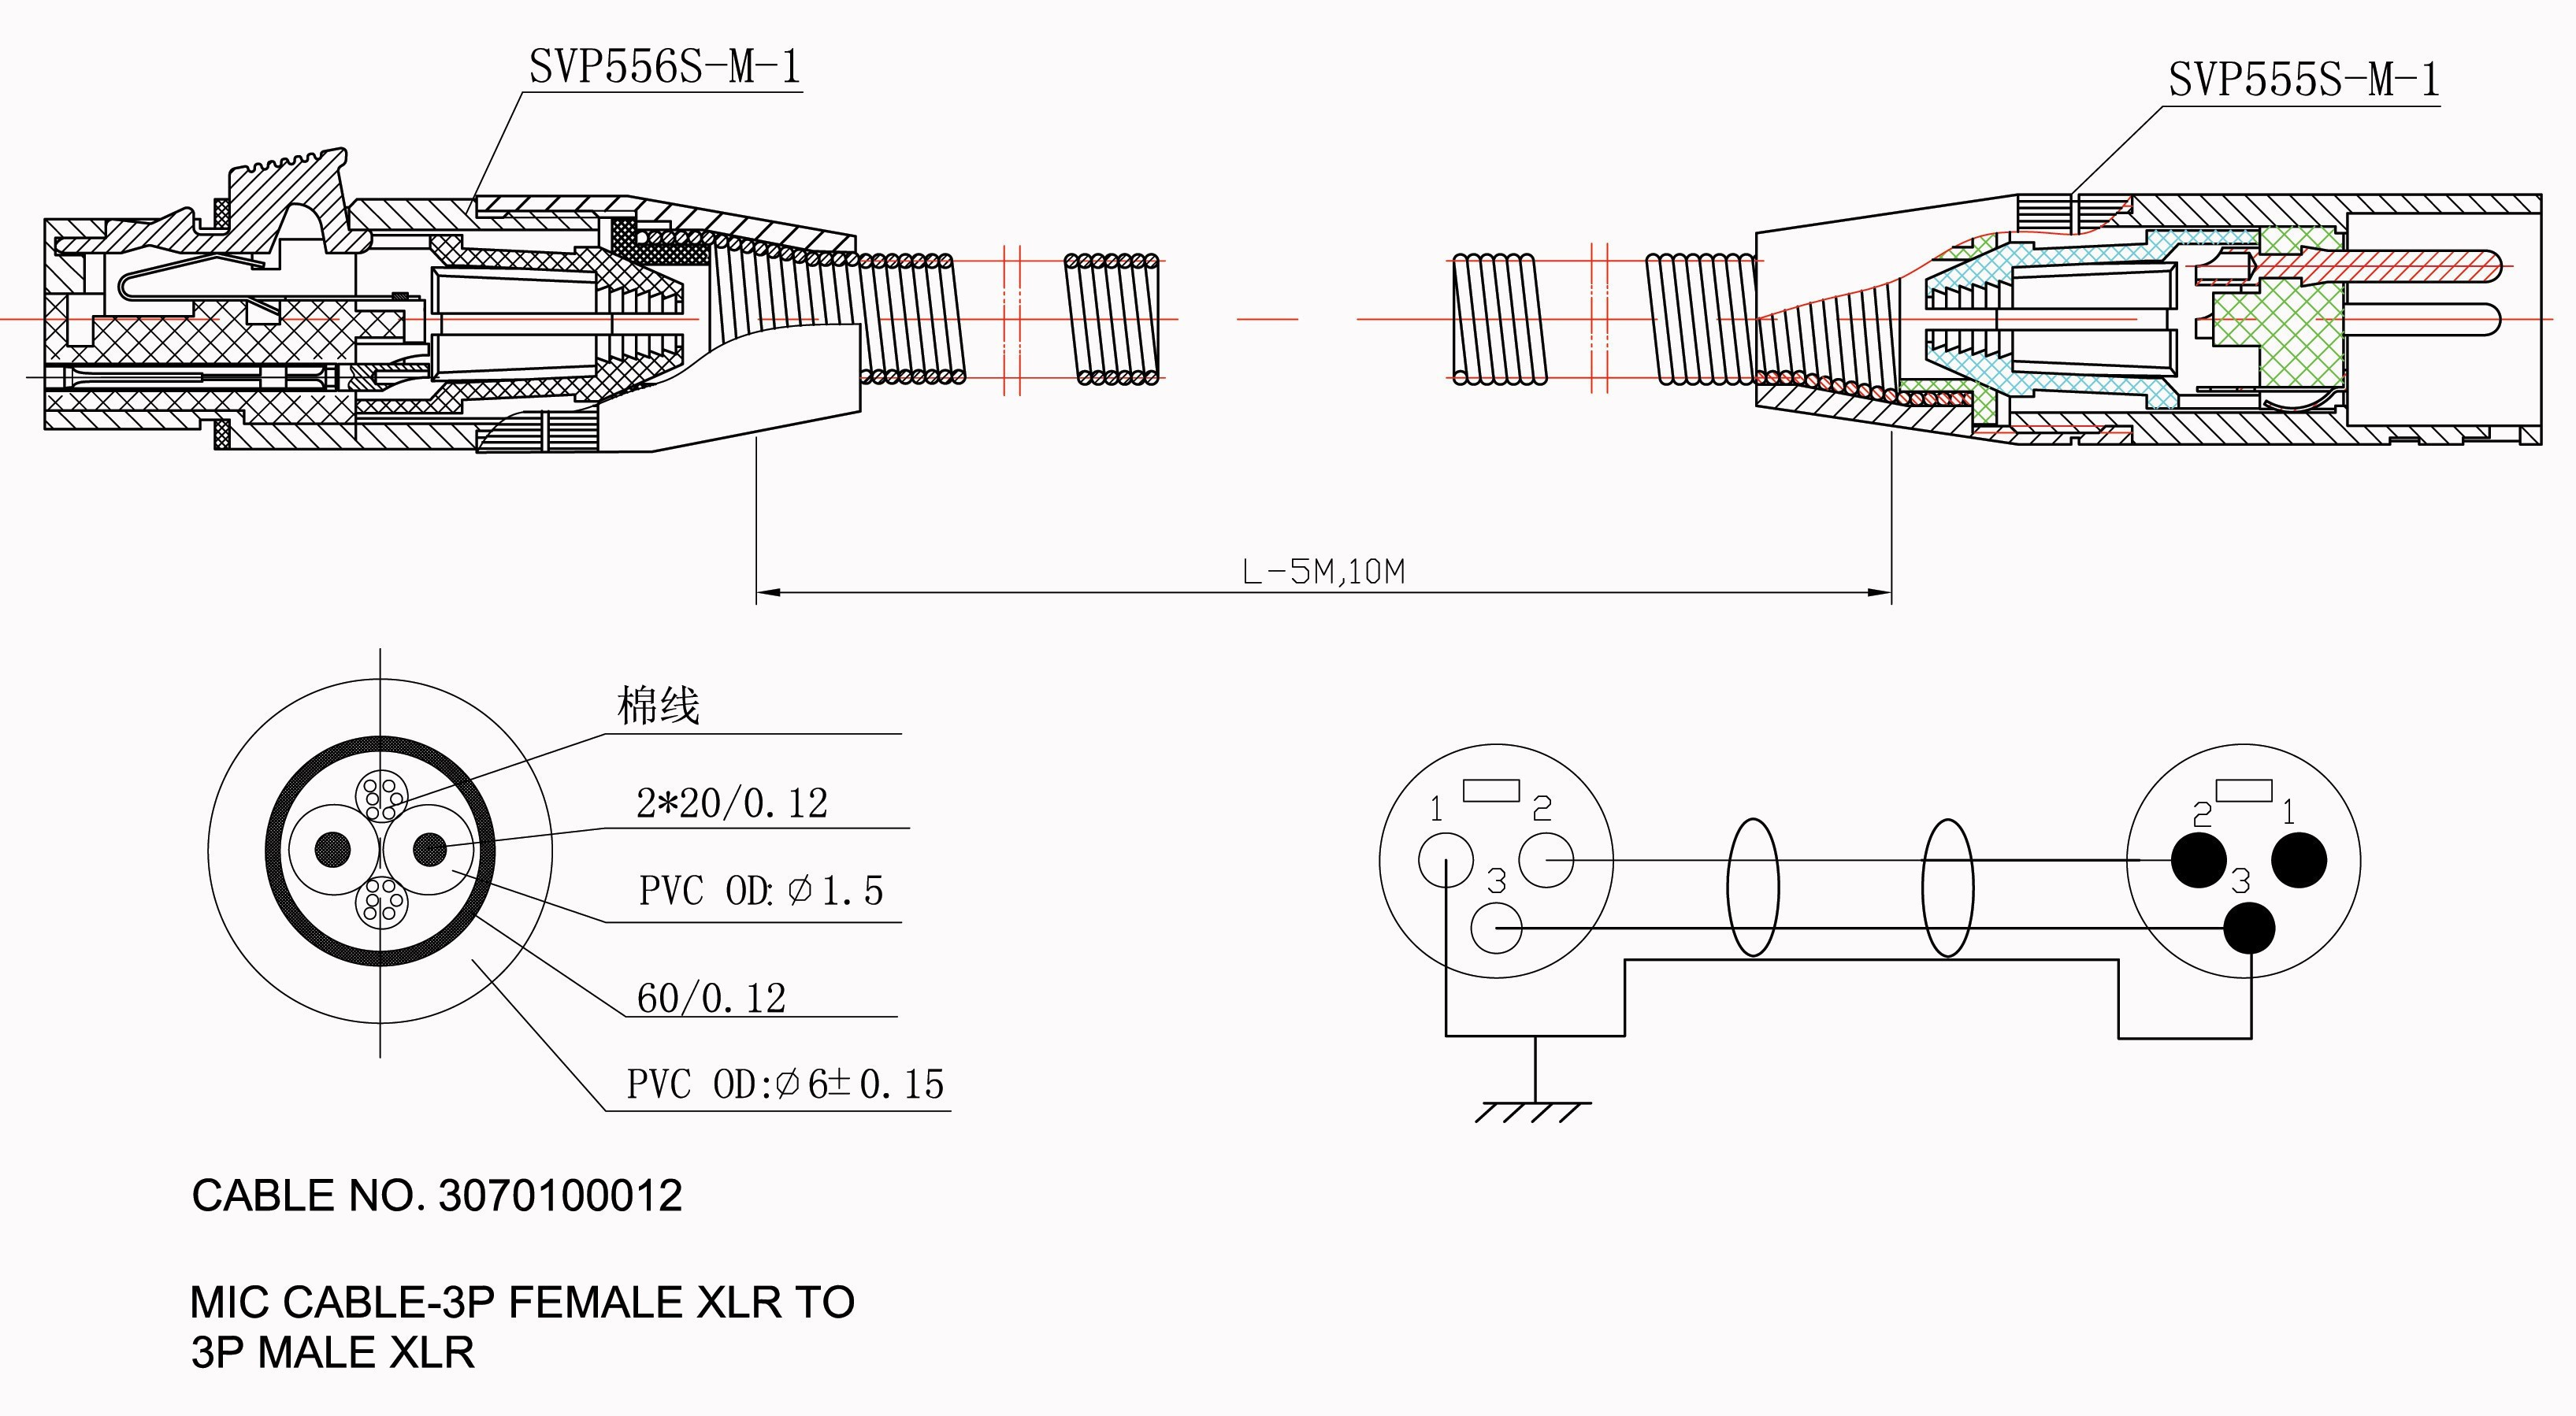 6 0 L Powerstroke Engine Diagram Wiring Diagram From 208v Another Blog About Wiring Diagram • Of 6 0 L Powerstroke Engine Diagram